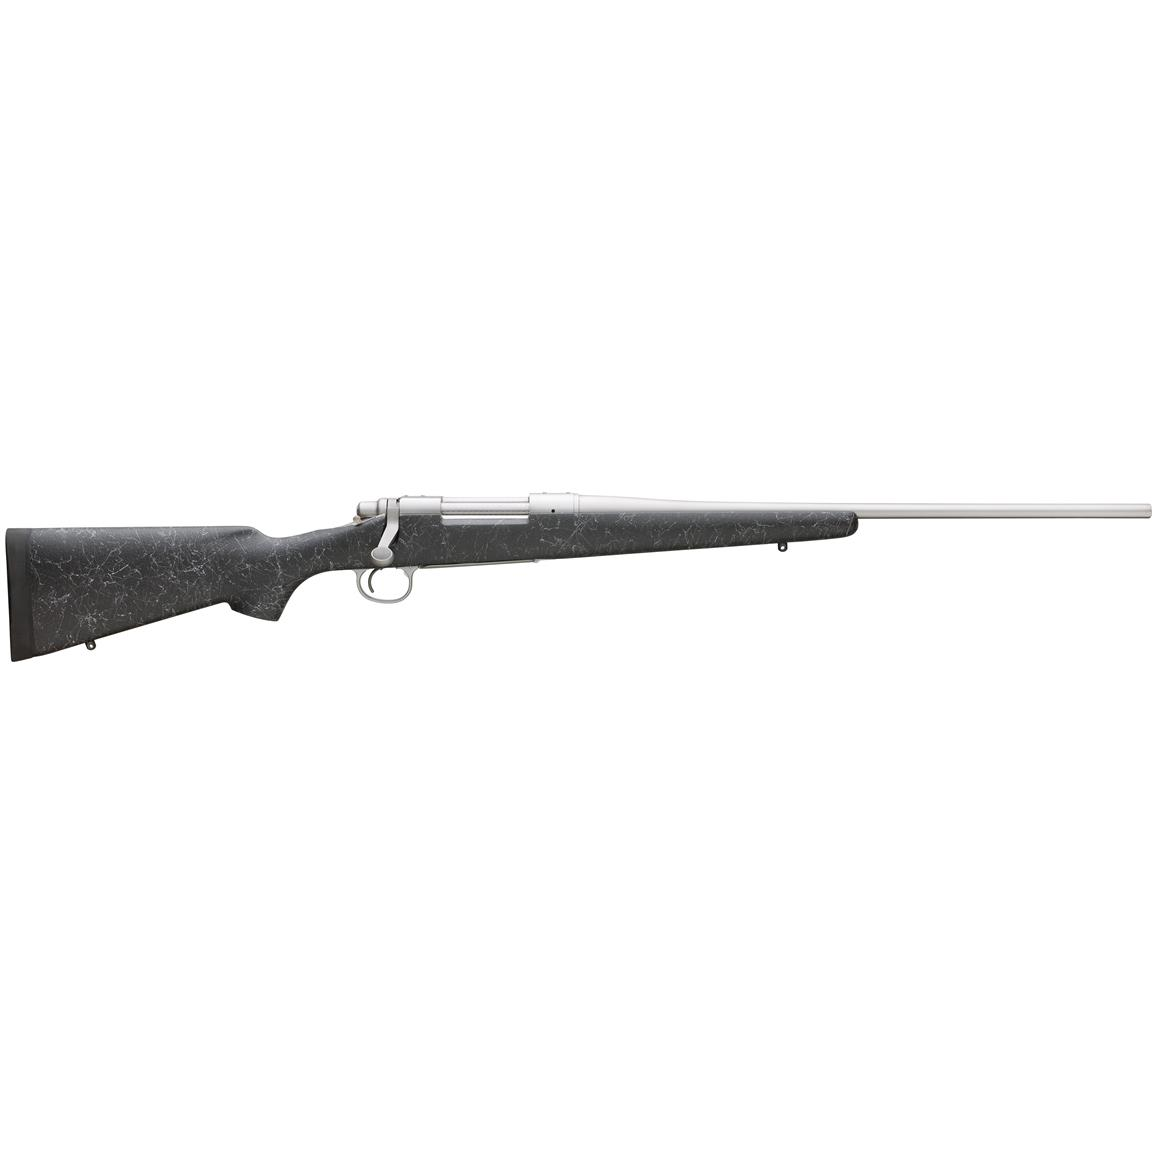 "Remington Model 700 Mountain SS, Bolt Action, .30-06 Springfield, 22"" Barrel, 4+1 Rounds"